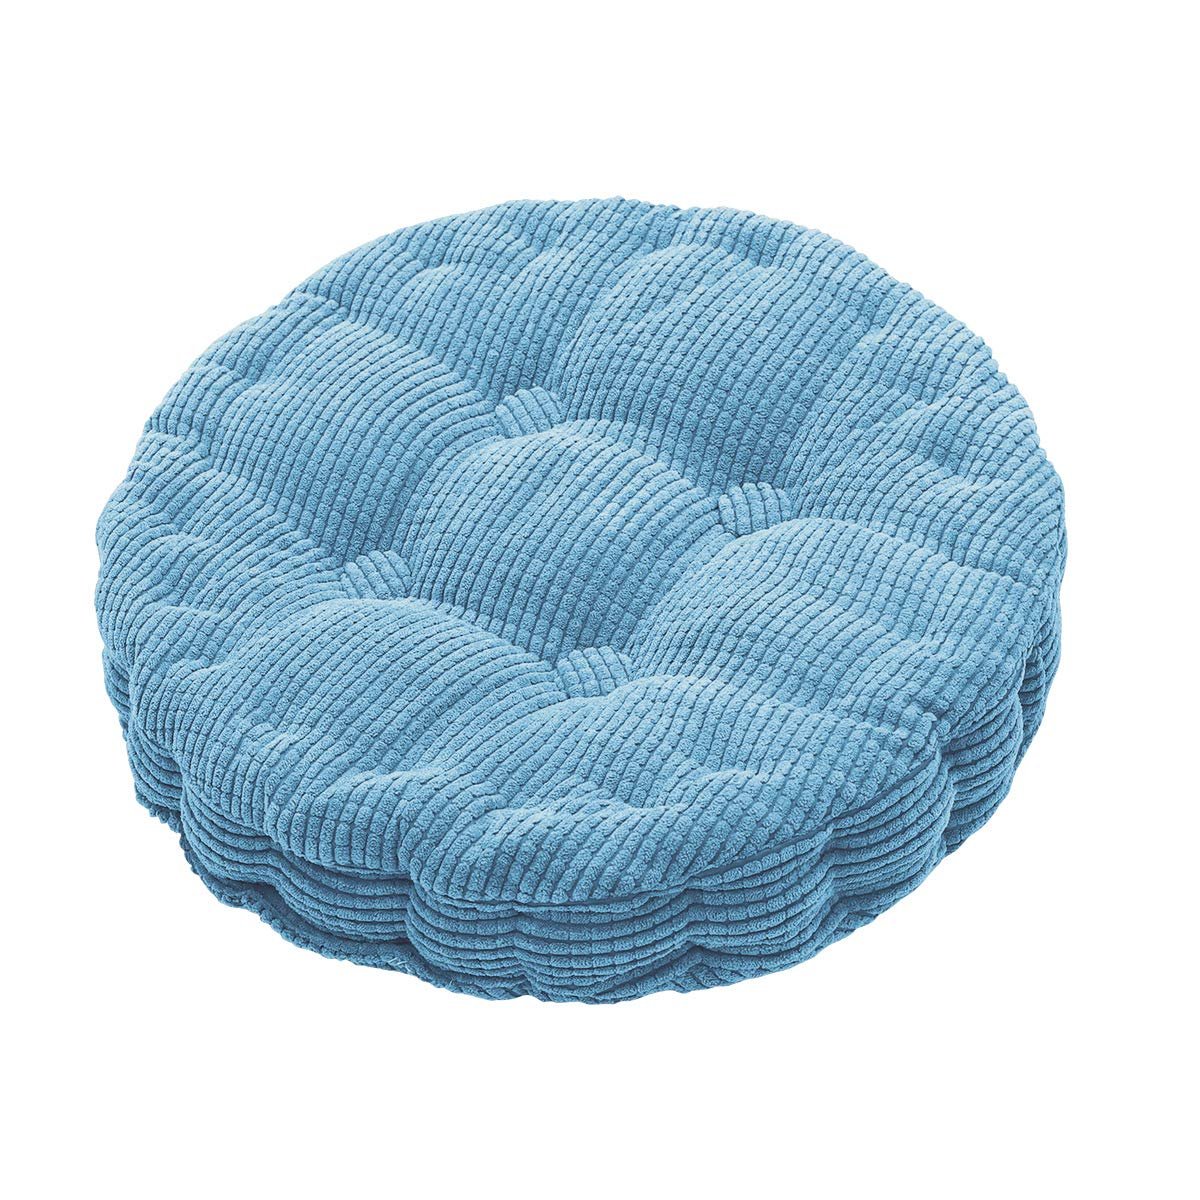 Outdoor Round Seat Cushions Epe Cotton Filled Boosted Cushion Indoor Chair Cushions For Home Office Kitchen Blue 19 7 X 19 7 X 3